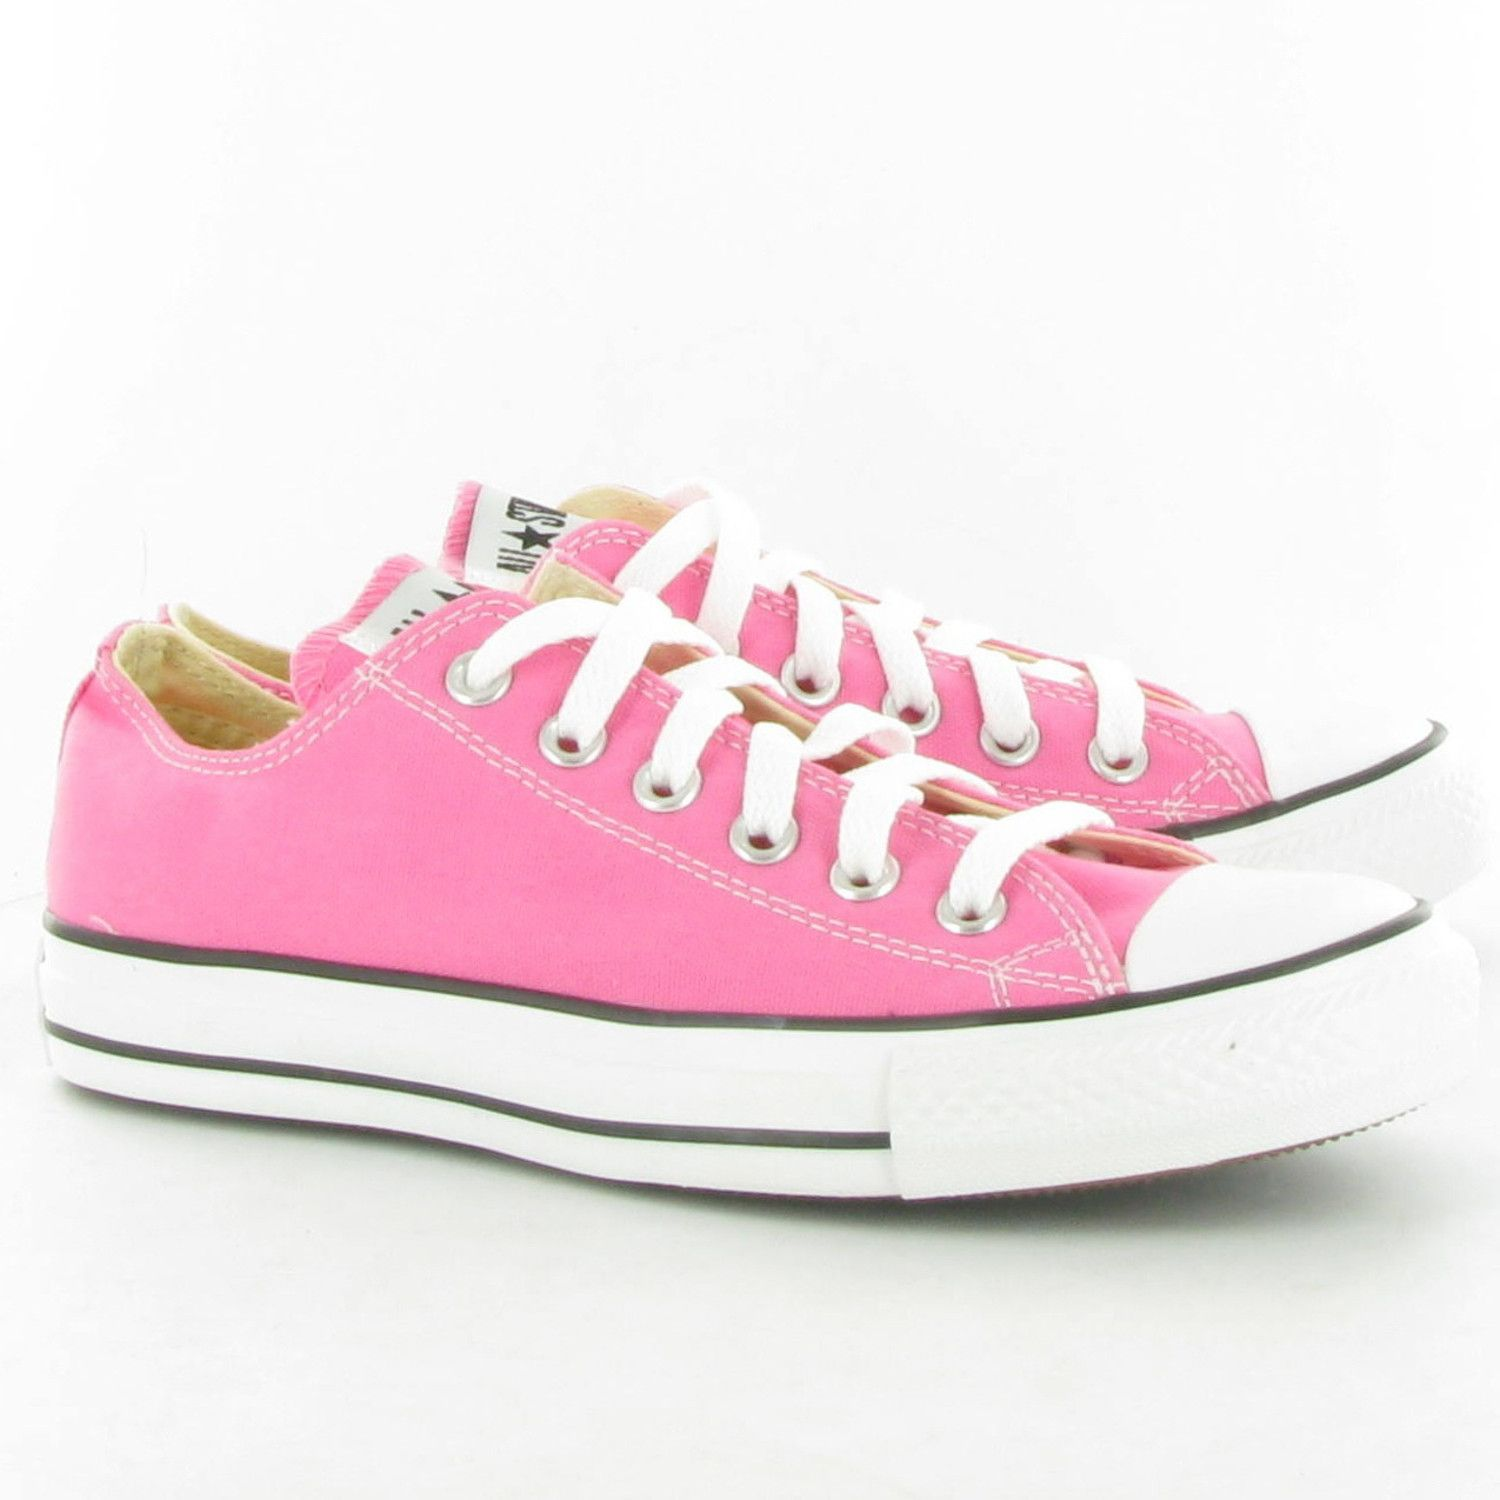 other wallpapersconverse canvas shoes - photo #45